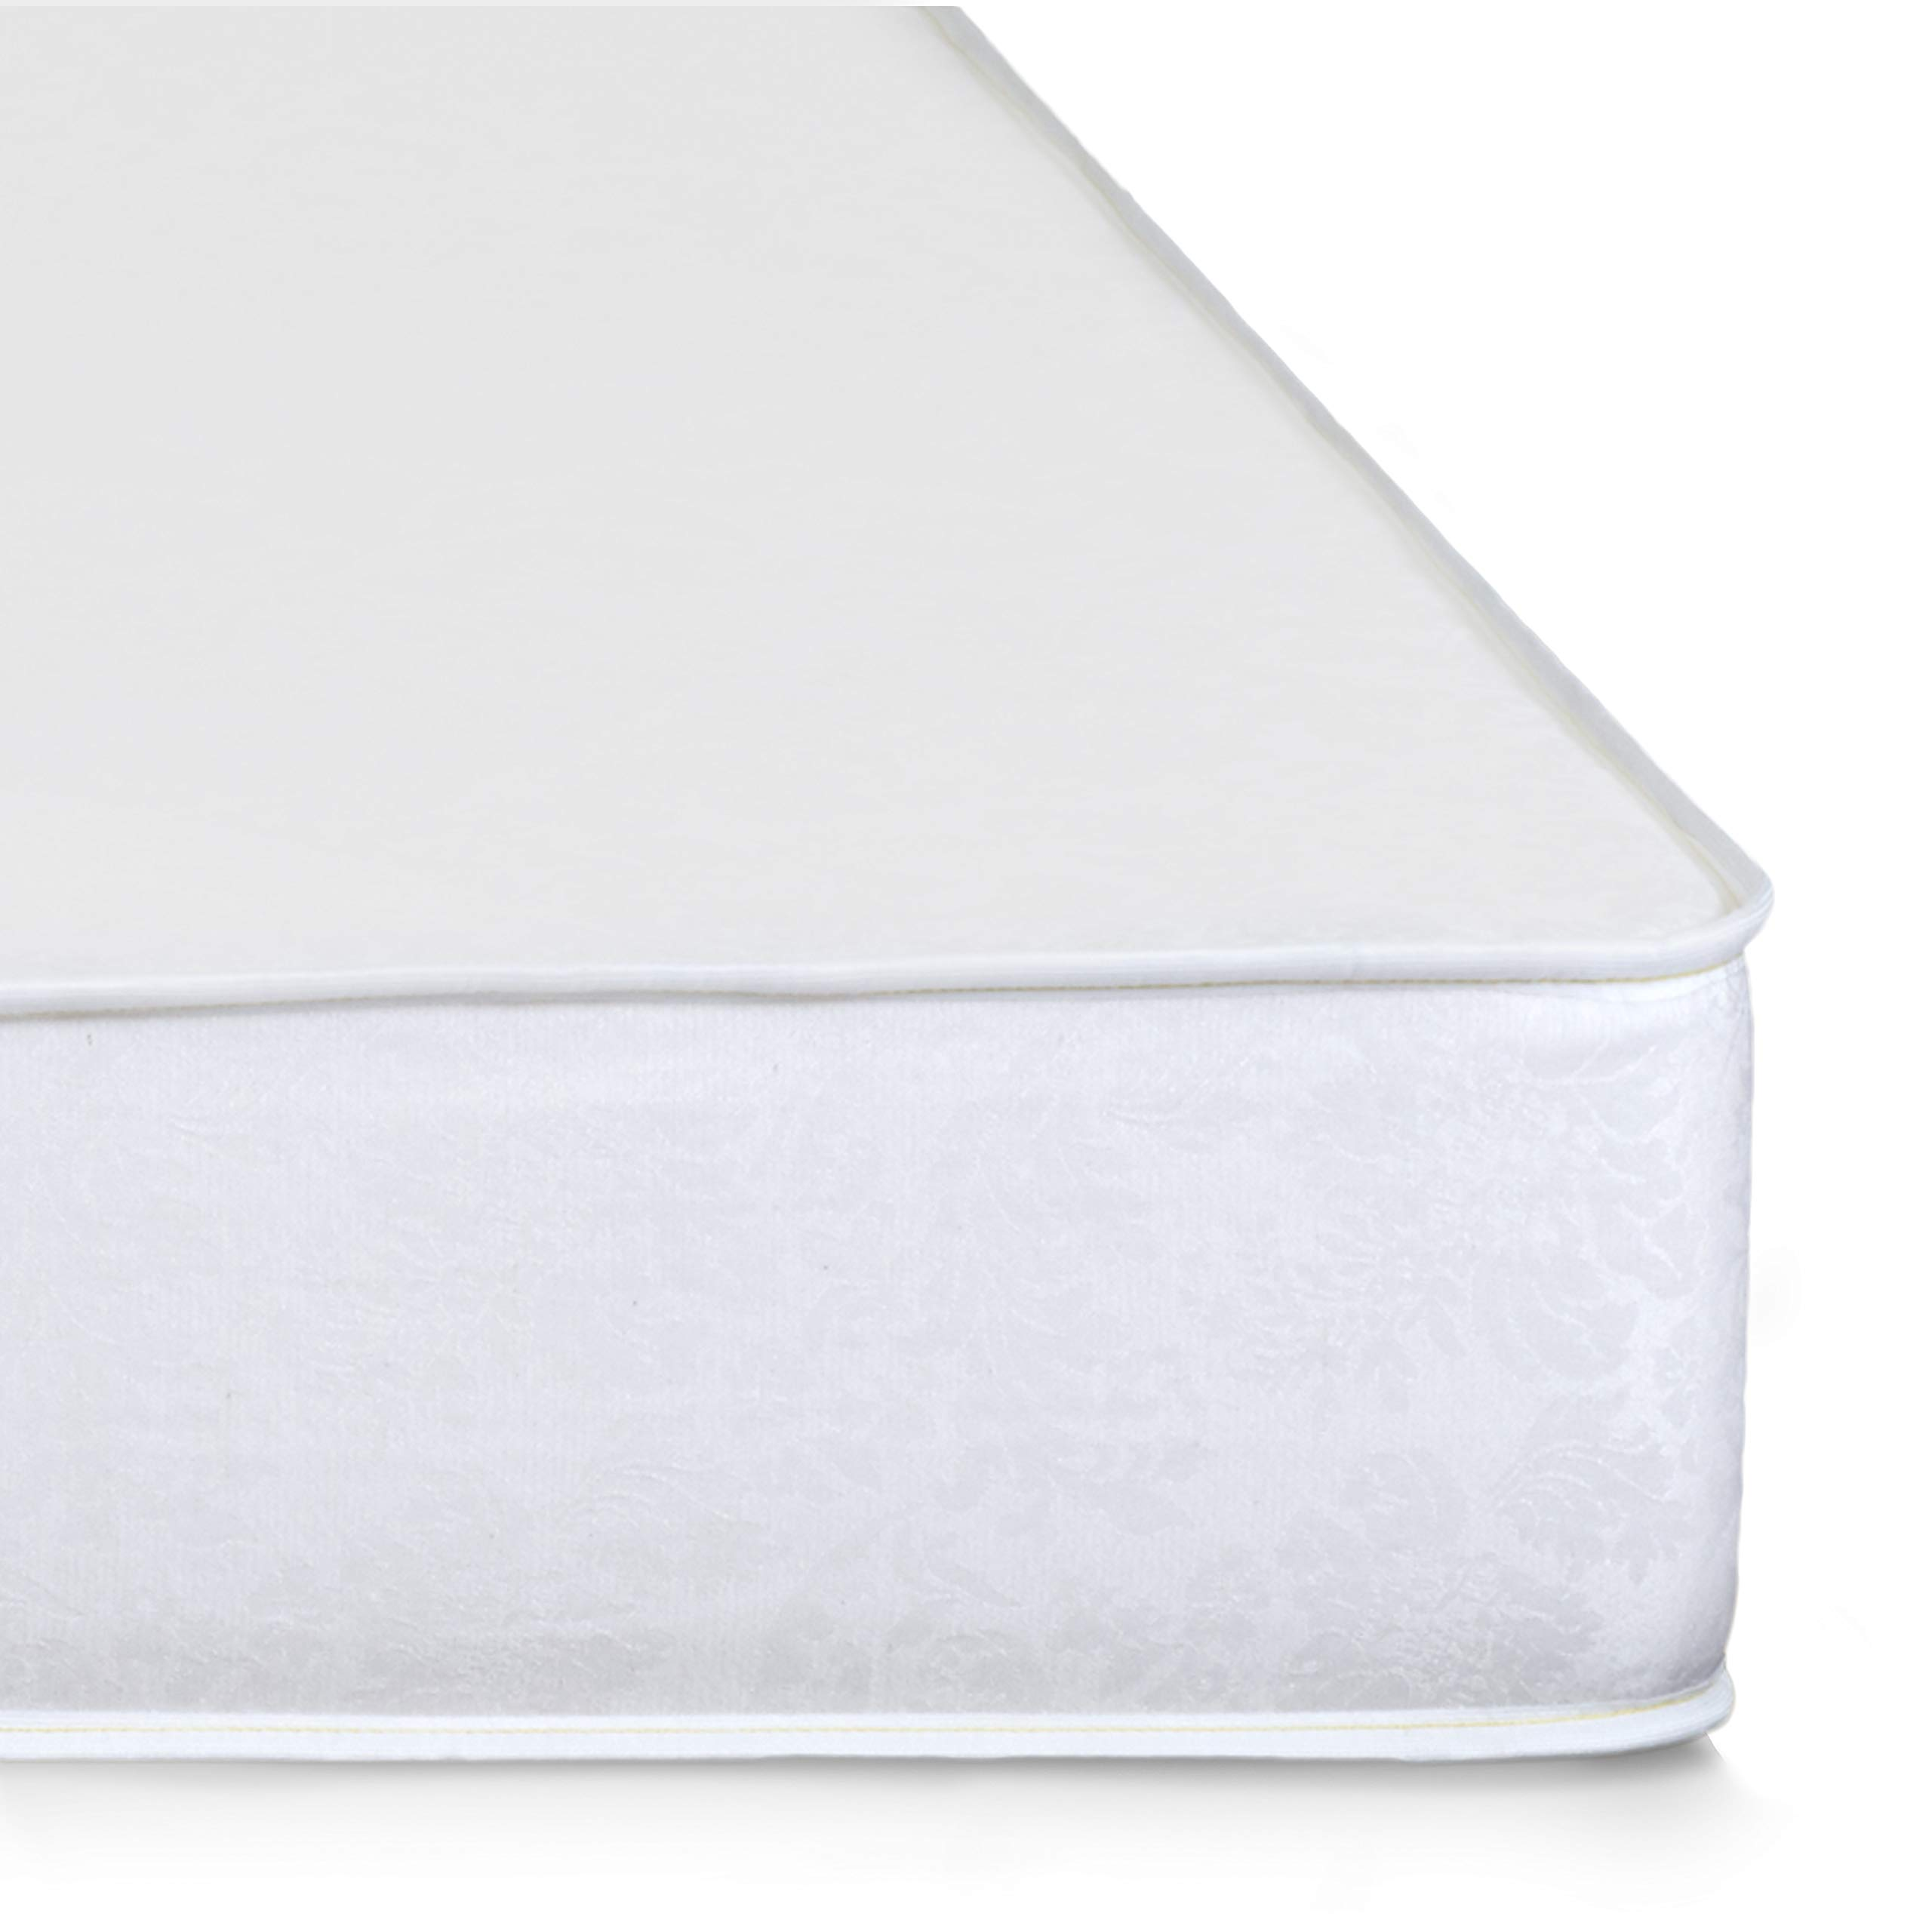 Serenia Sleep 8-Inch Memory Foam RV Mattress, Short Full by Serenia Sleep (Image #2)